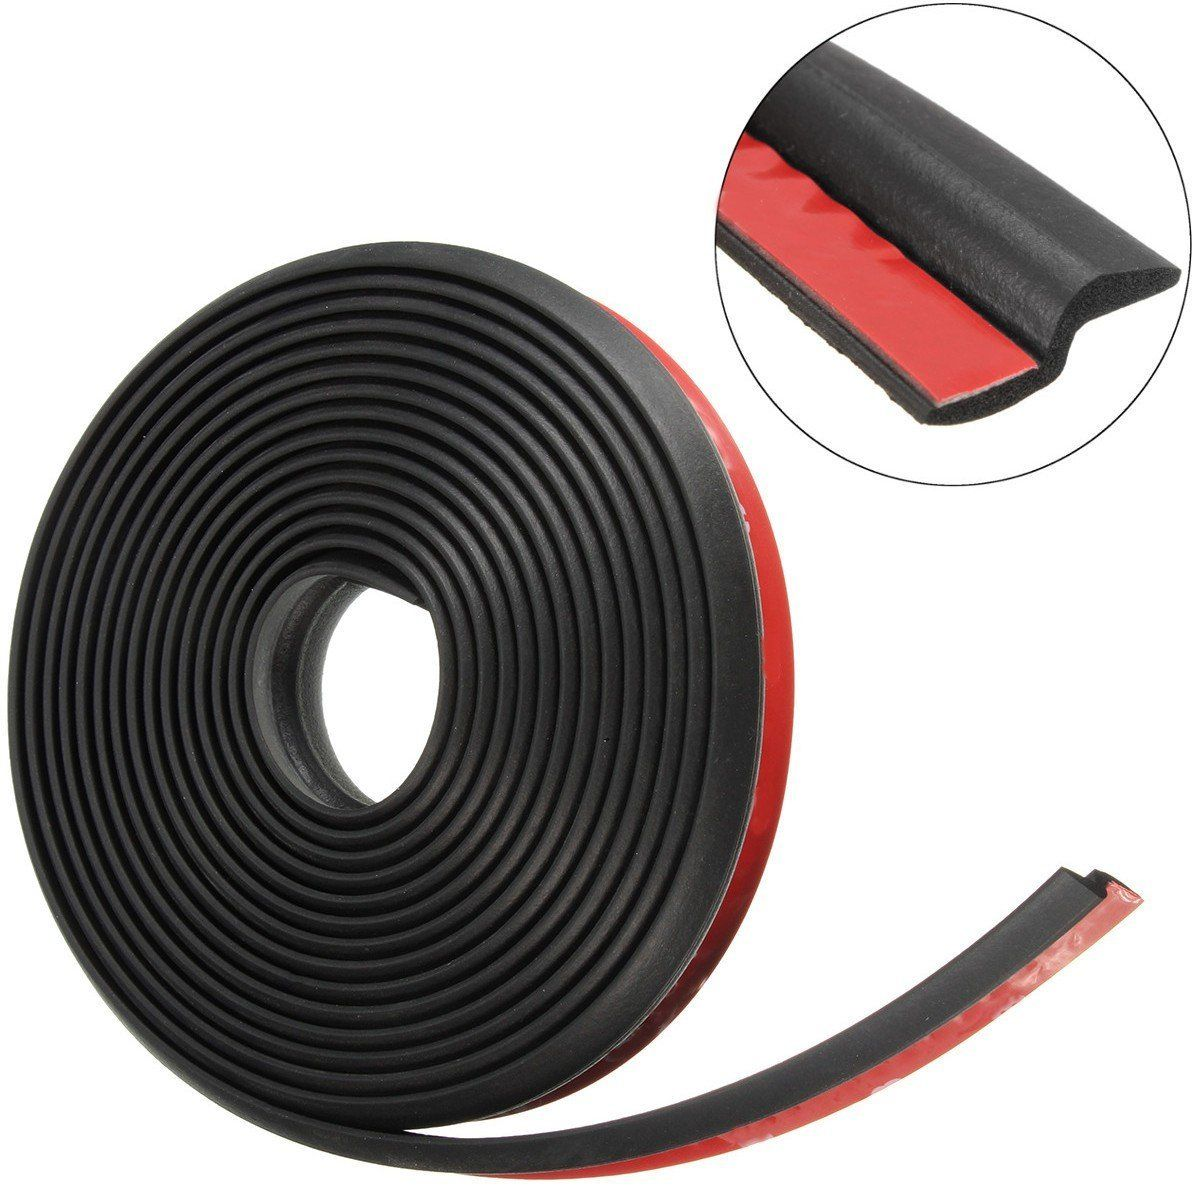 Car Door Rubber Seal Epdm Dense And Sponge Rubber Extrusions Rubber Profiles Bulb Trim Seals Automo Noise Insulation Weather Stripping Car Door Rubber Seal